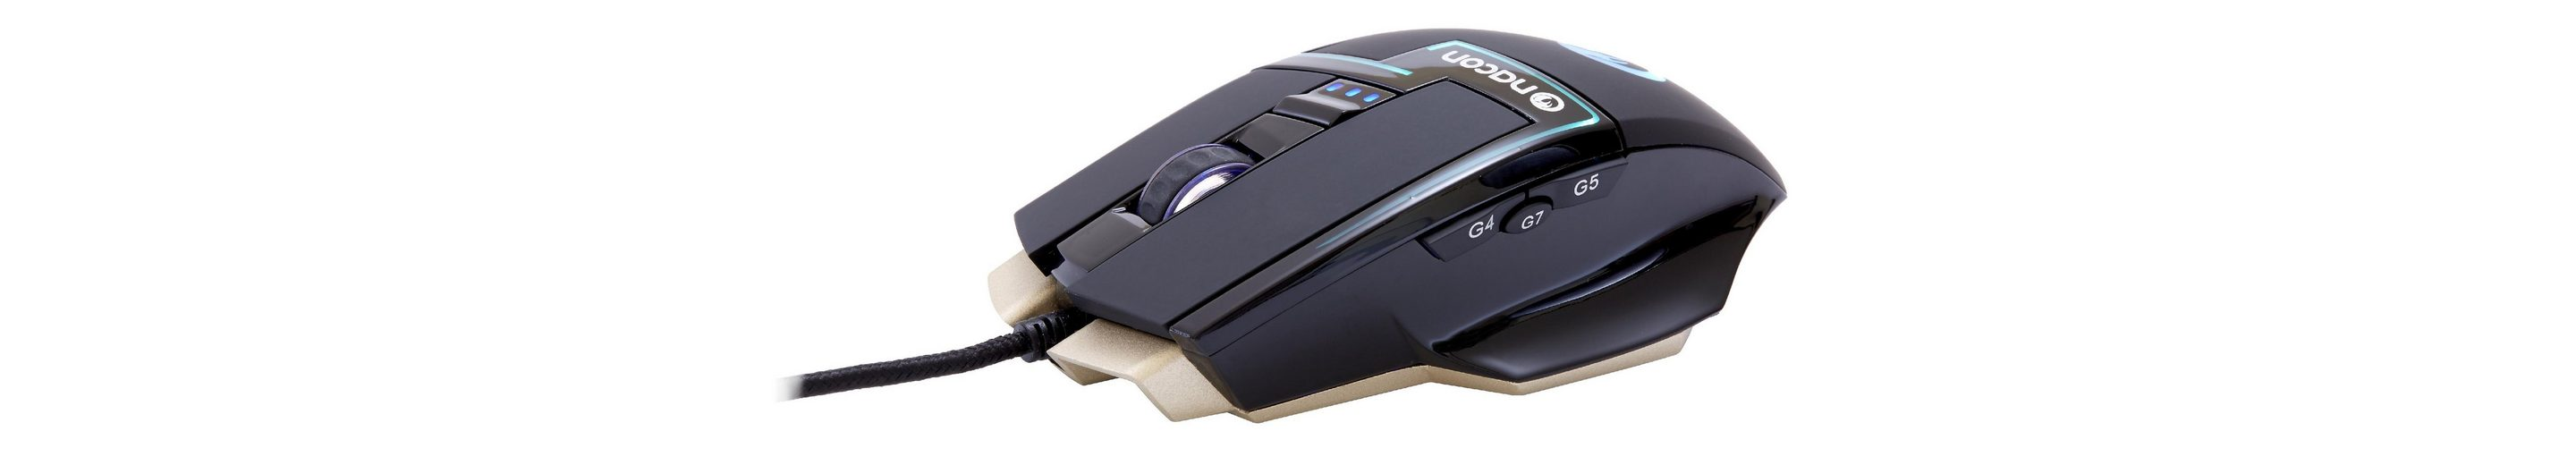 BIGBEN Mouse Laser Gaming Mouse GM-350L »(PC)«